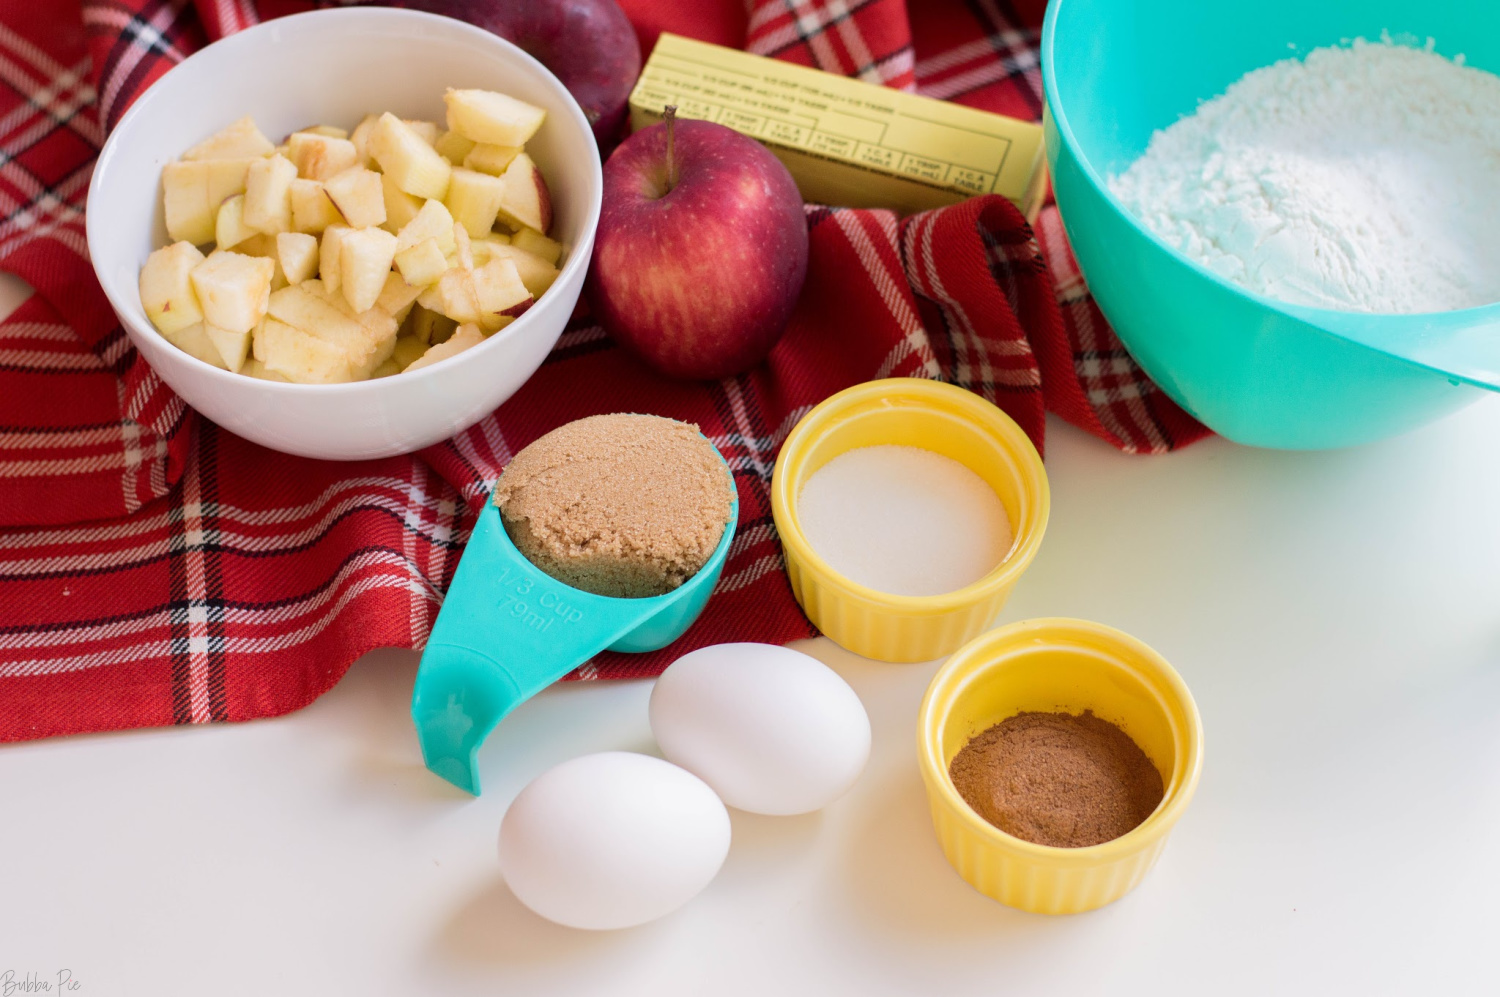 Apple Cinnamon Bread Ingredients include brown sugar, egg, nutmed and cinnamon.